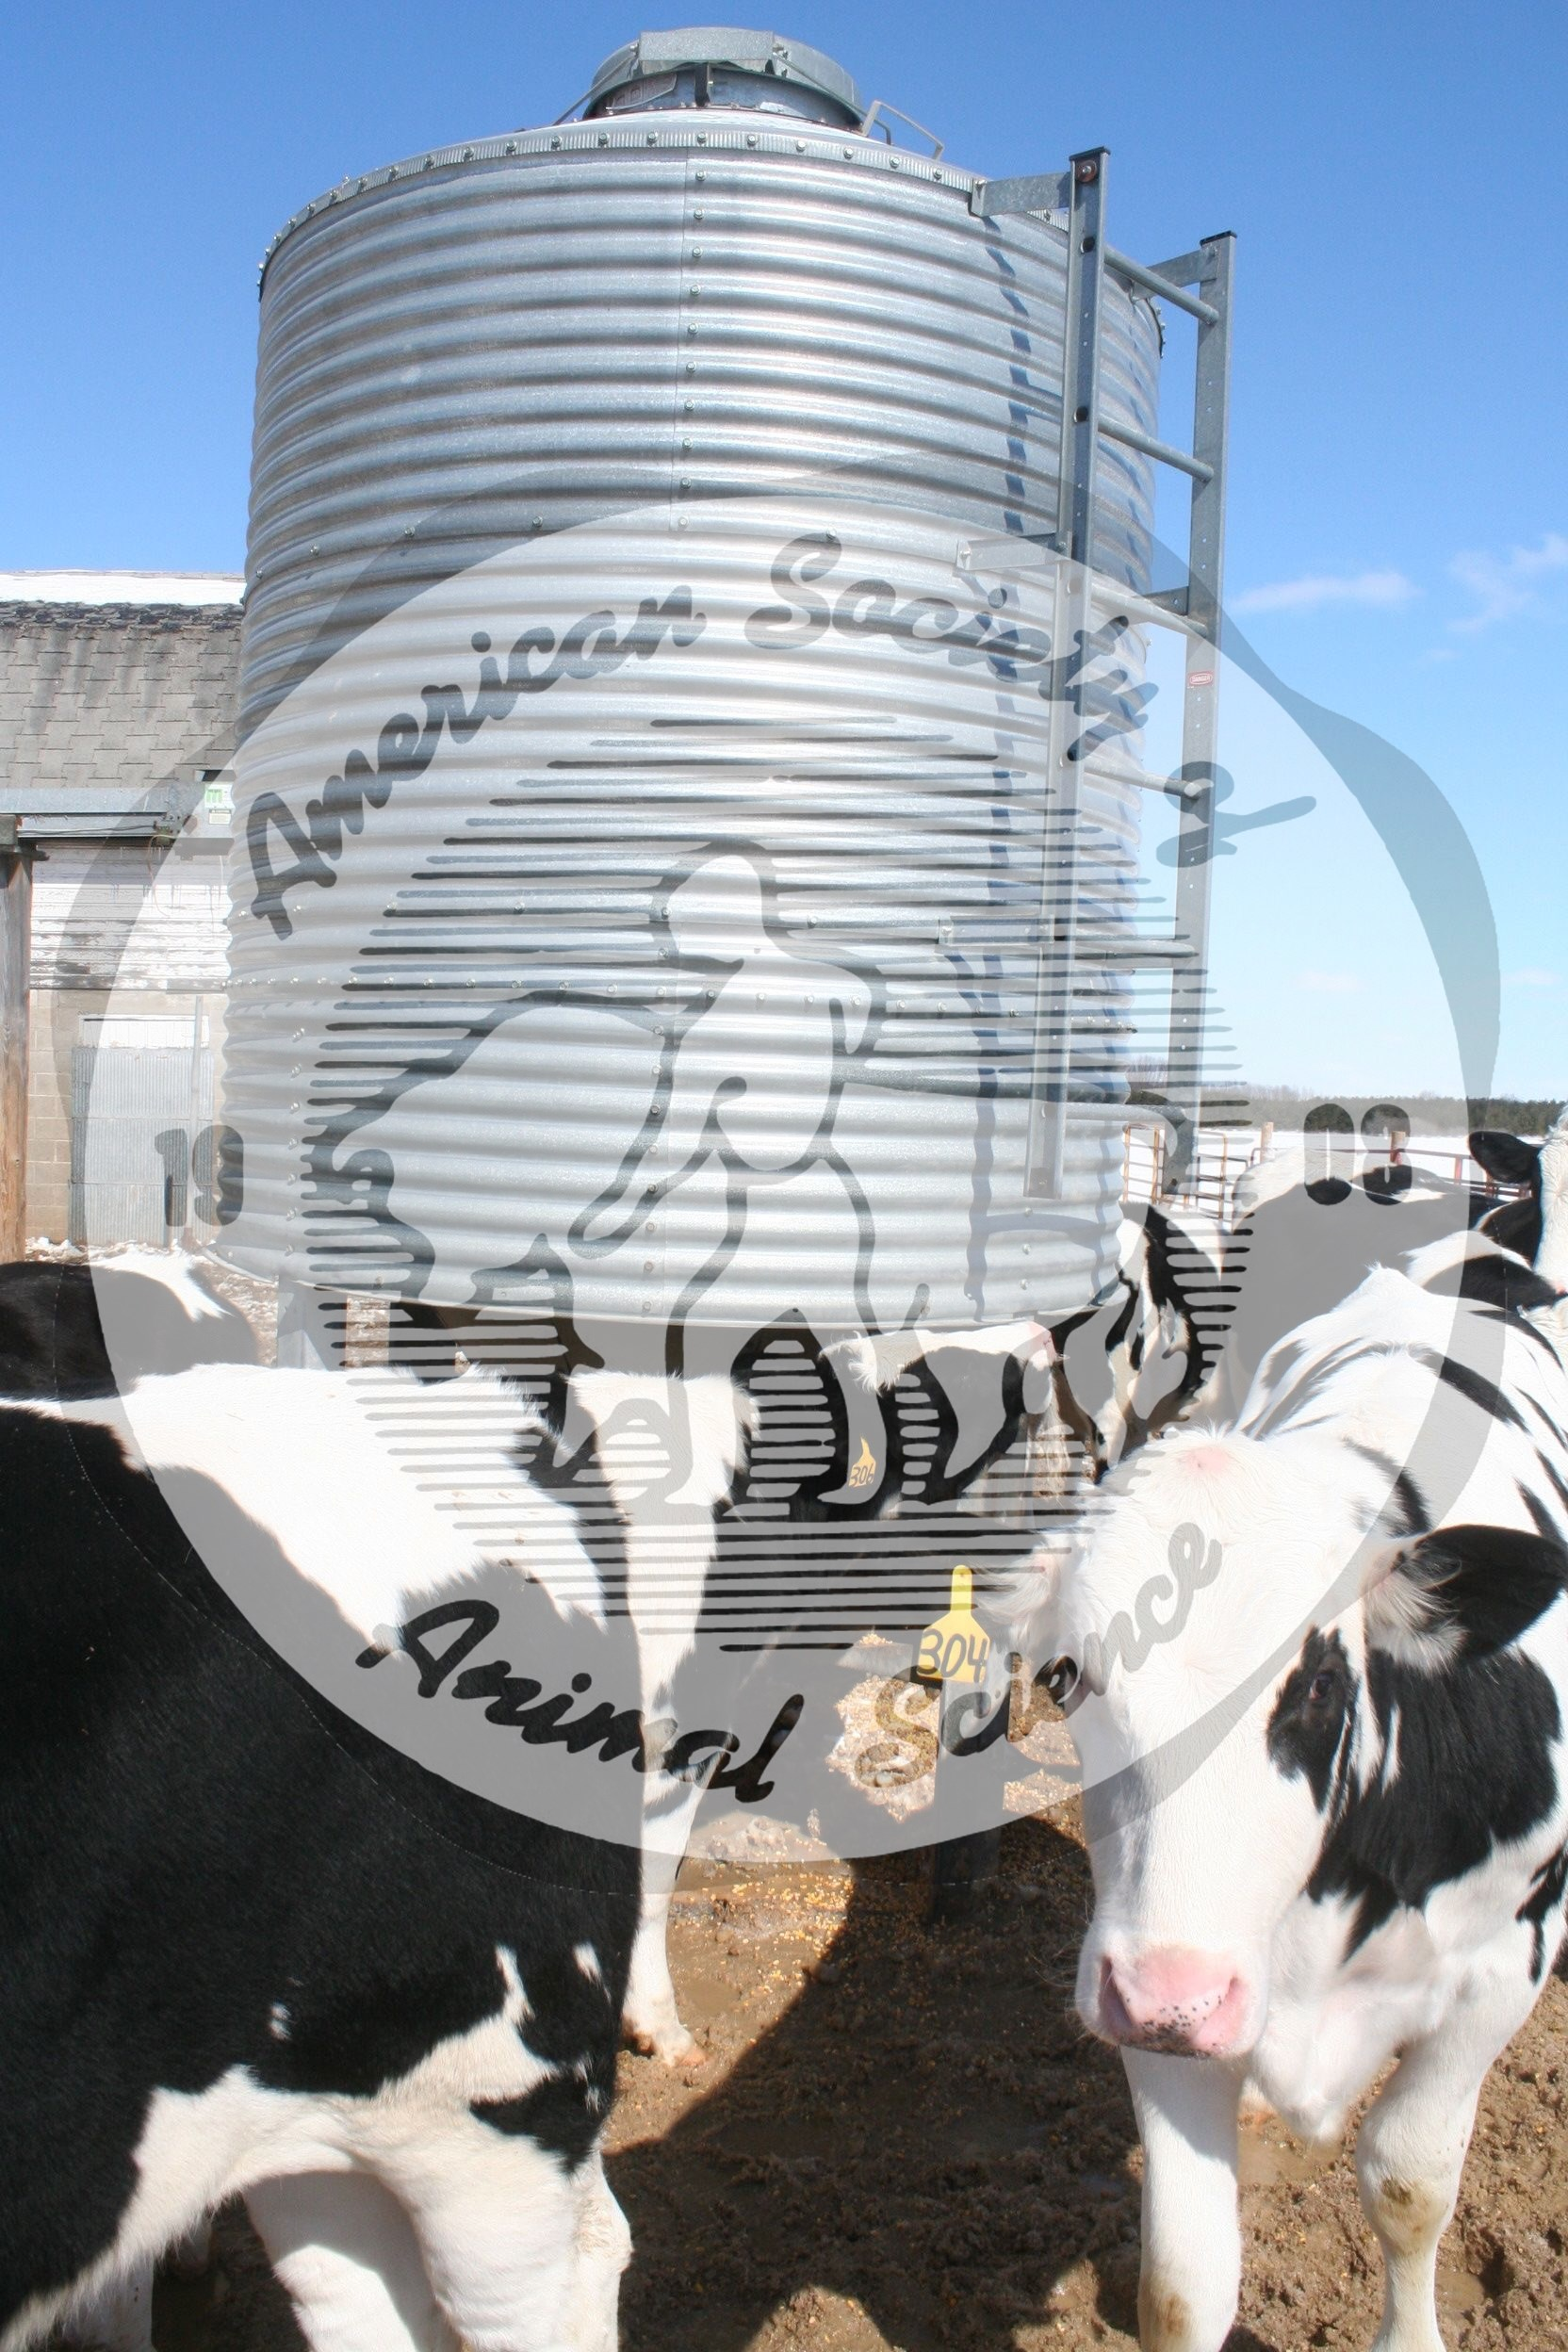 This is one type of self-feeder where grain and supplement mix are placed in the feeder.  The advantage of a self-feeder is to reduce the cost of labor and equipment in comparison to a total mixed ration in a bunk.  Free-choice forage can be provided in addition to the self-feeder.